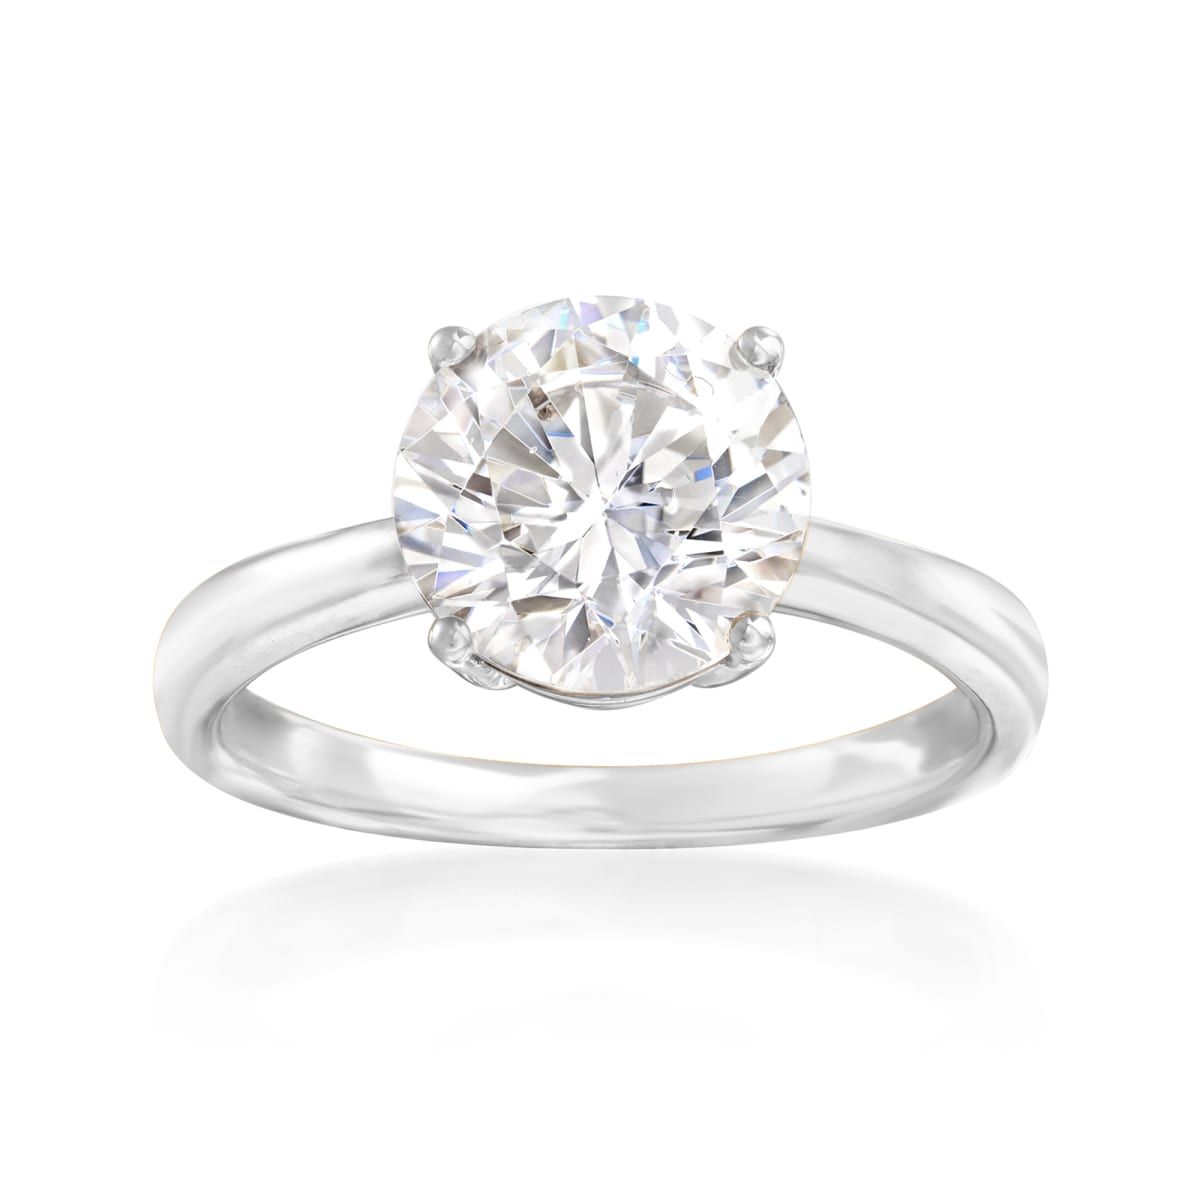 Rose Gold Over Sterling Silver CZ Brilliant Solitaire Engagement Ring 0.85-3ct